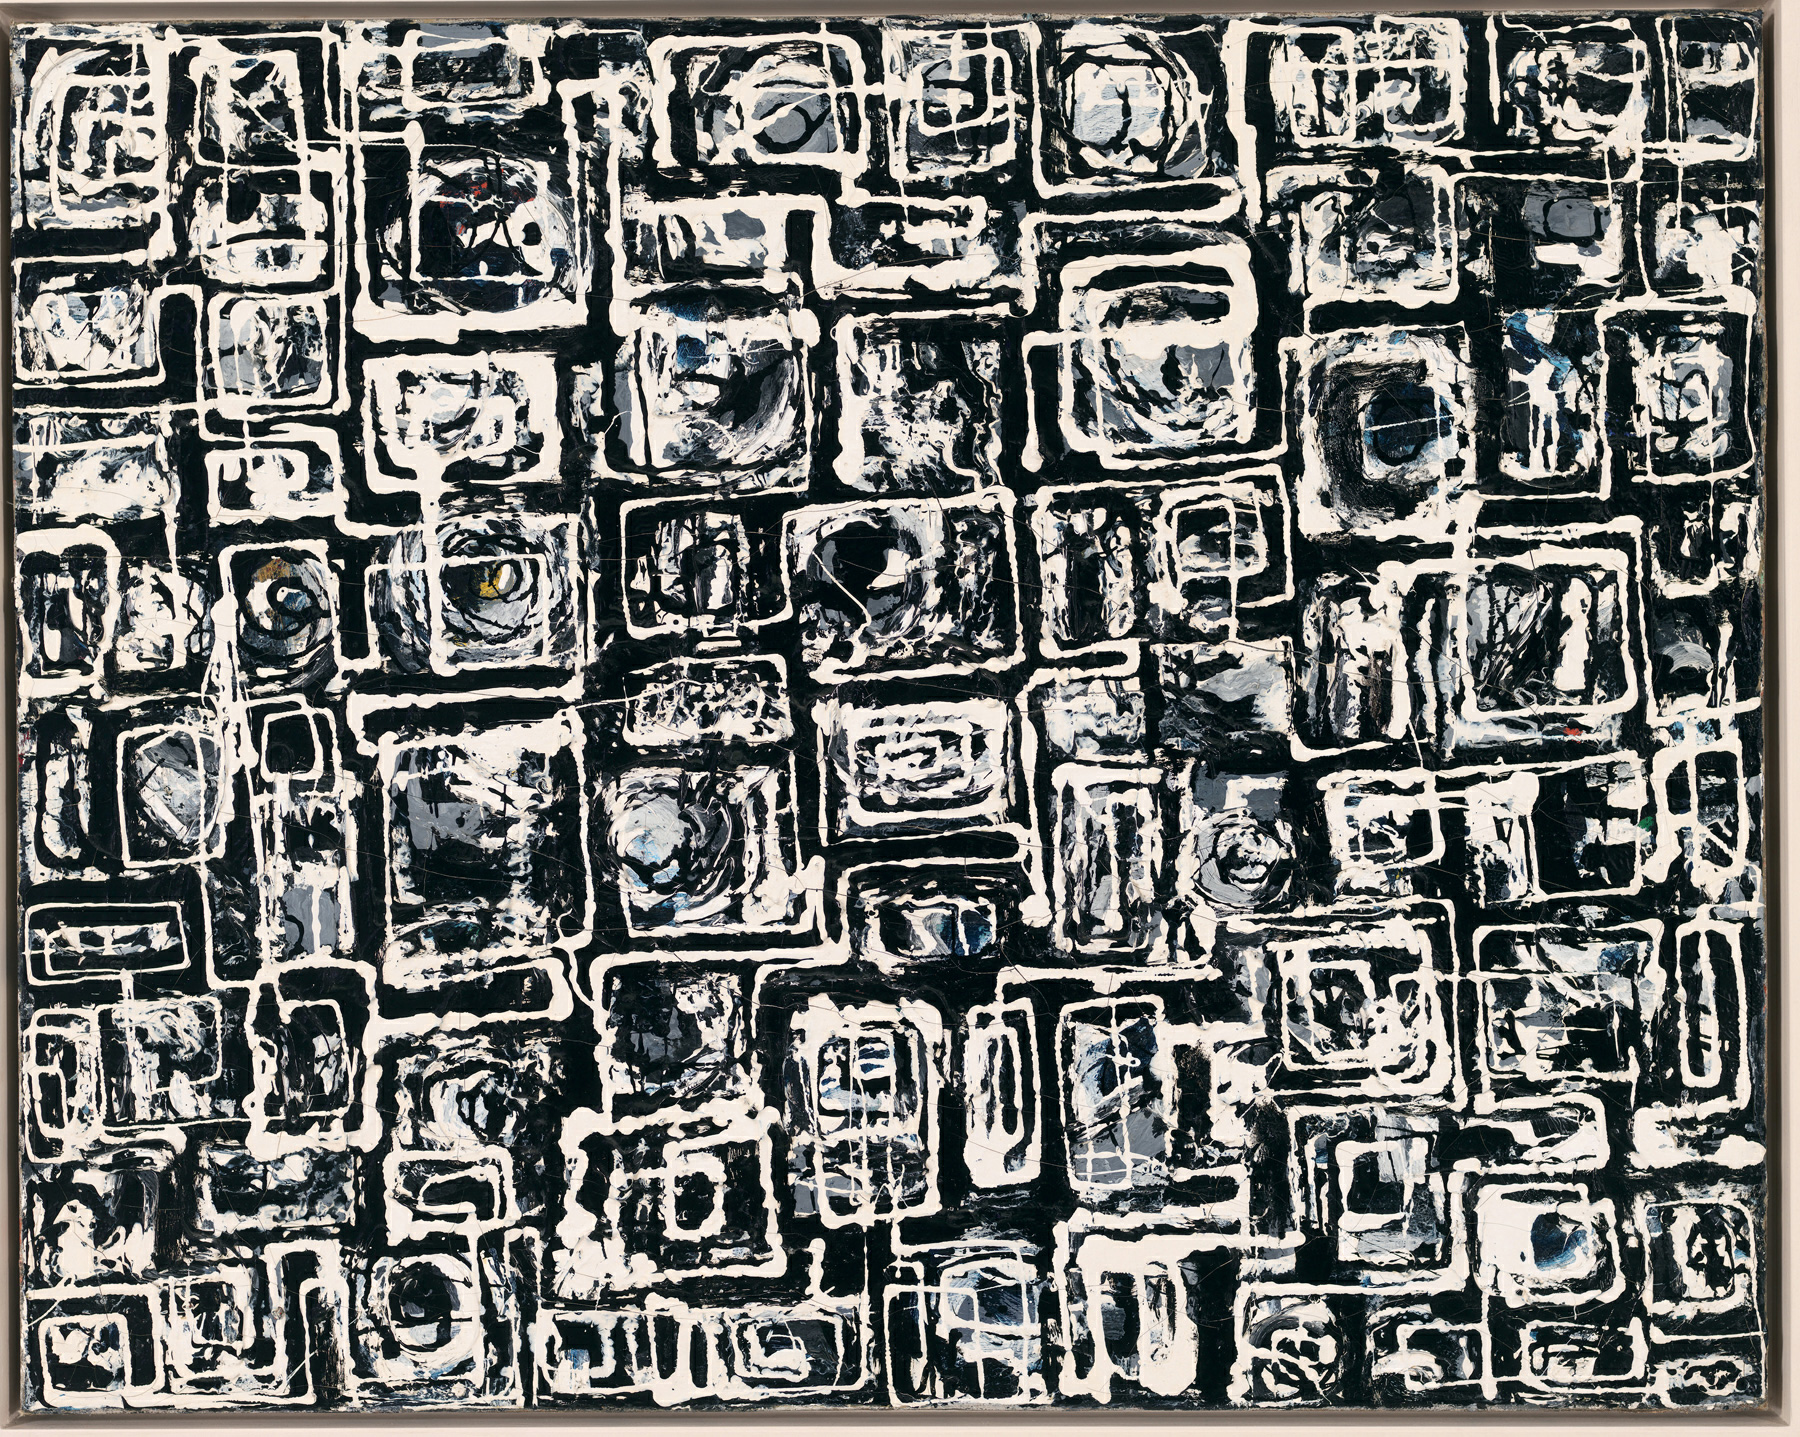 Lee Krasner, White Squares, ca. 1948, enamel and oil on canvas, 61.1 by 76.5 cm. The Whitney Museum of American Art, New York | Ninth Street Women | Five Painters and the Movement That Changed Modern Art | Little, Brown and Company | Mary Gabriel | STIRworld